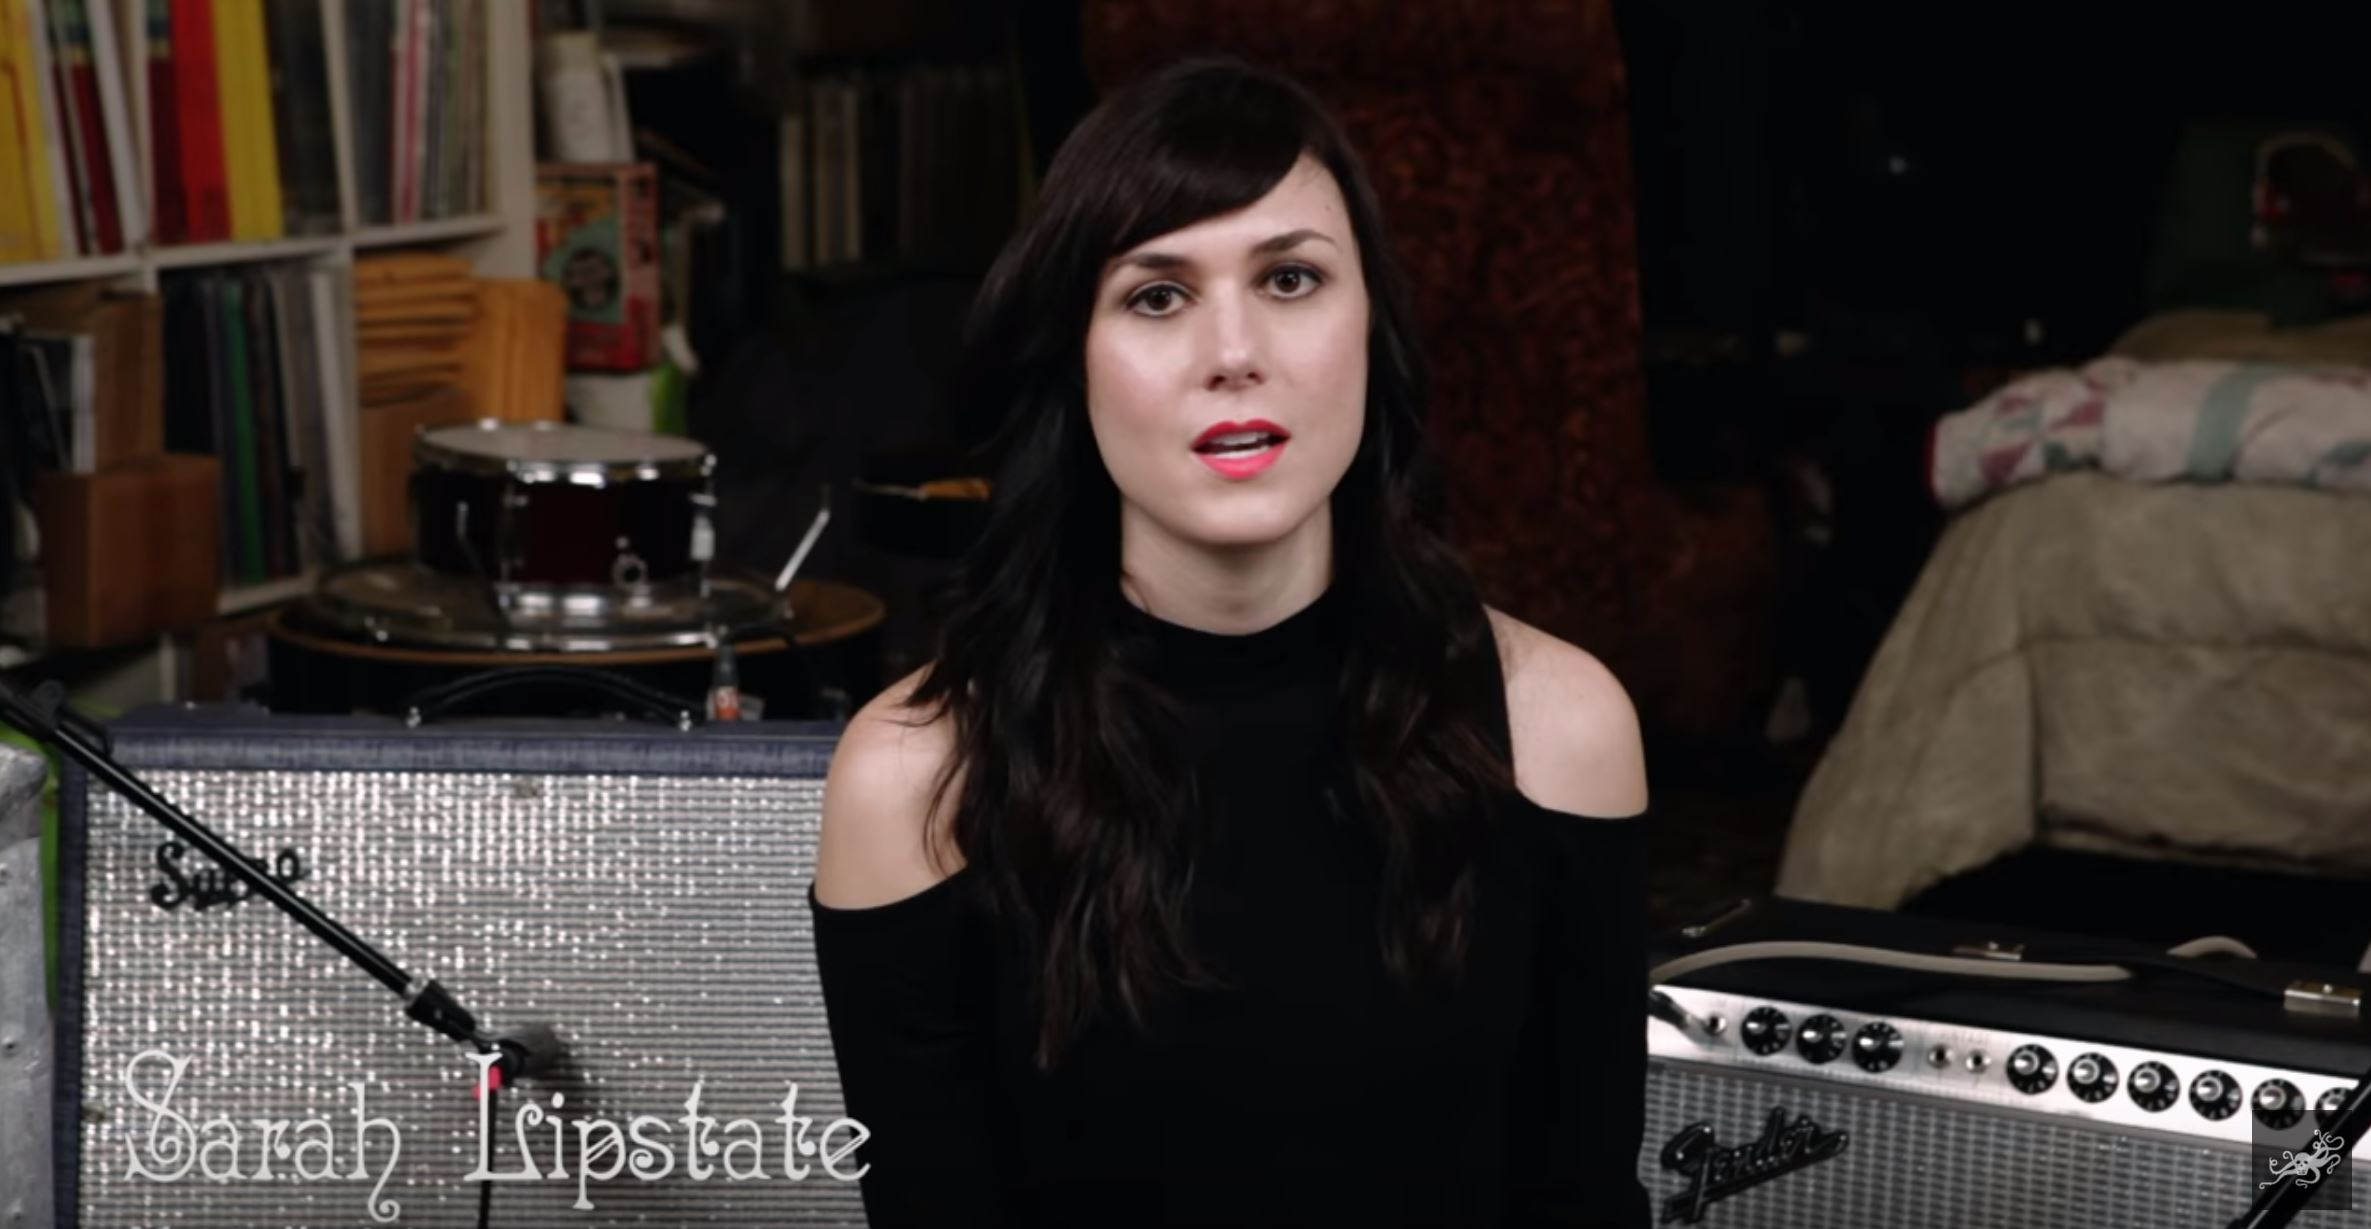 Sarah Lipstate (Noveller) Takes You Through Her EarthQuaker Devices